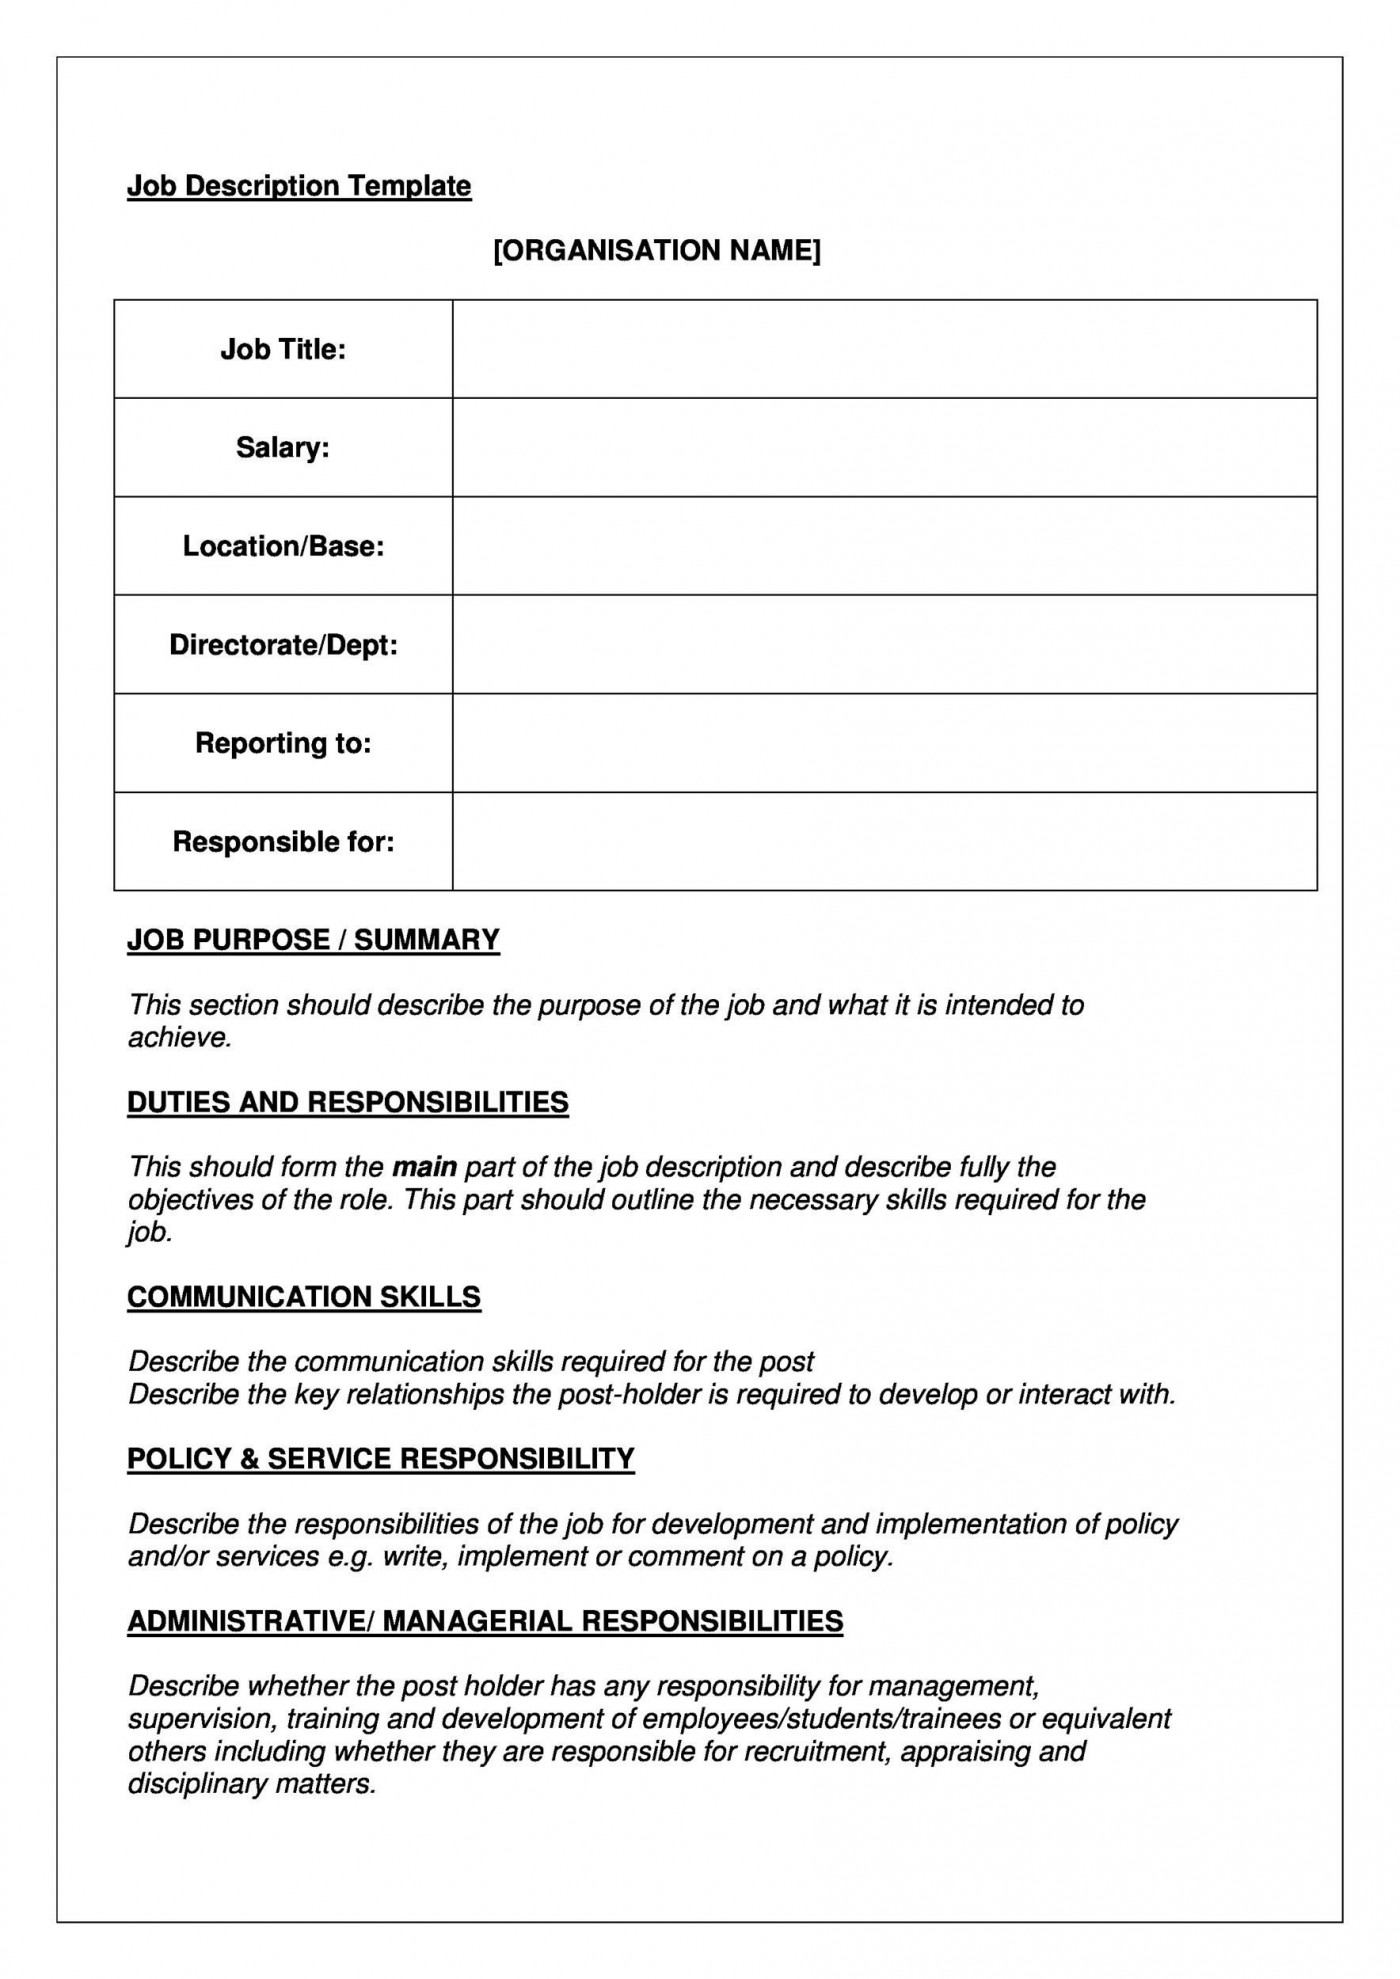 005 Stupendou Blank Job Description Template Picture  Ks2 Word Free Printable1400